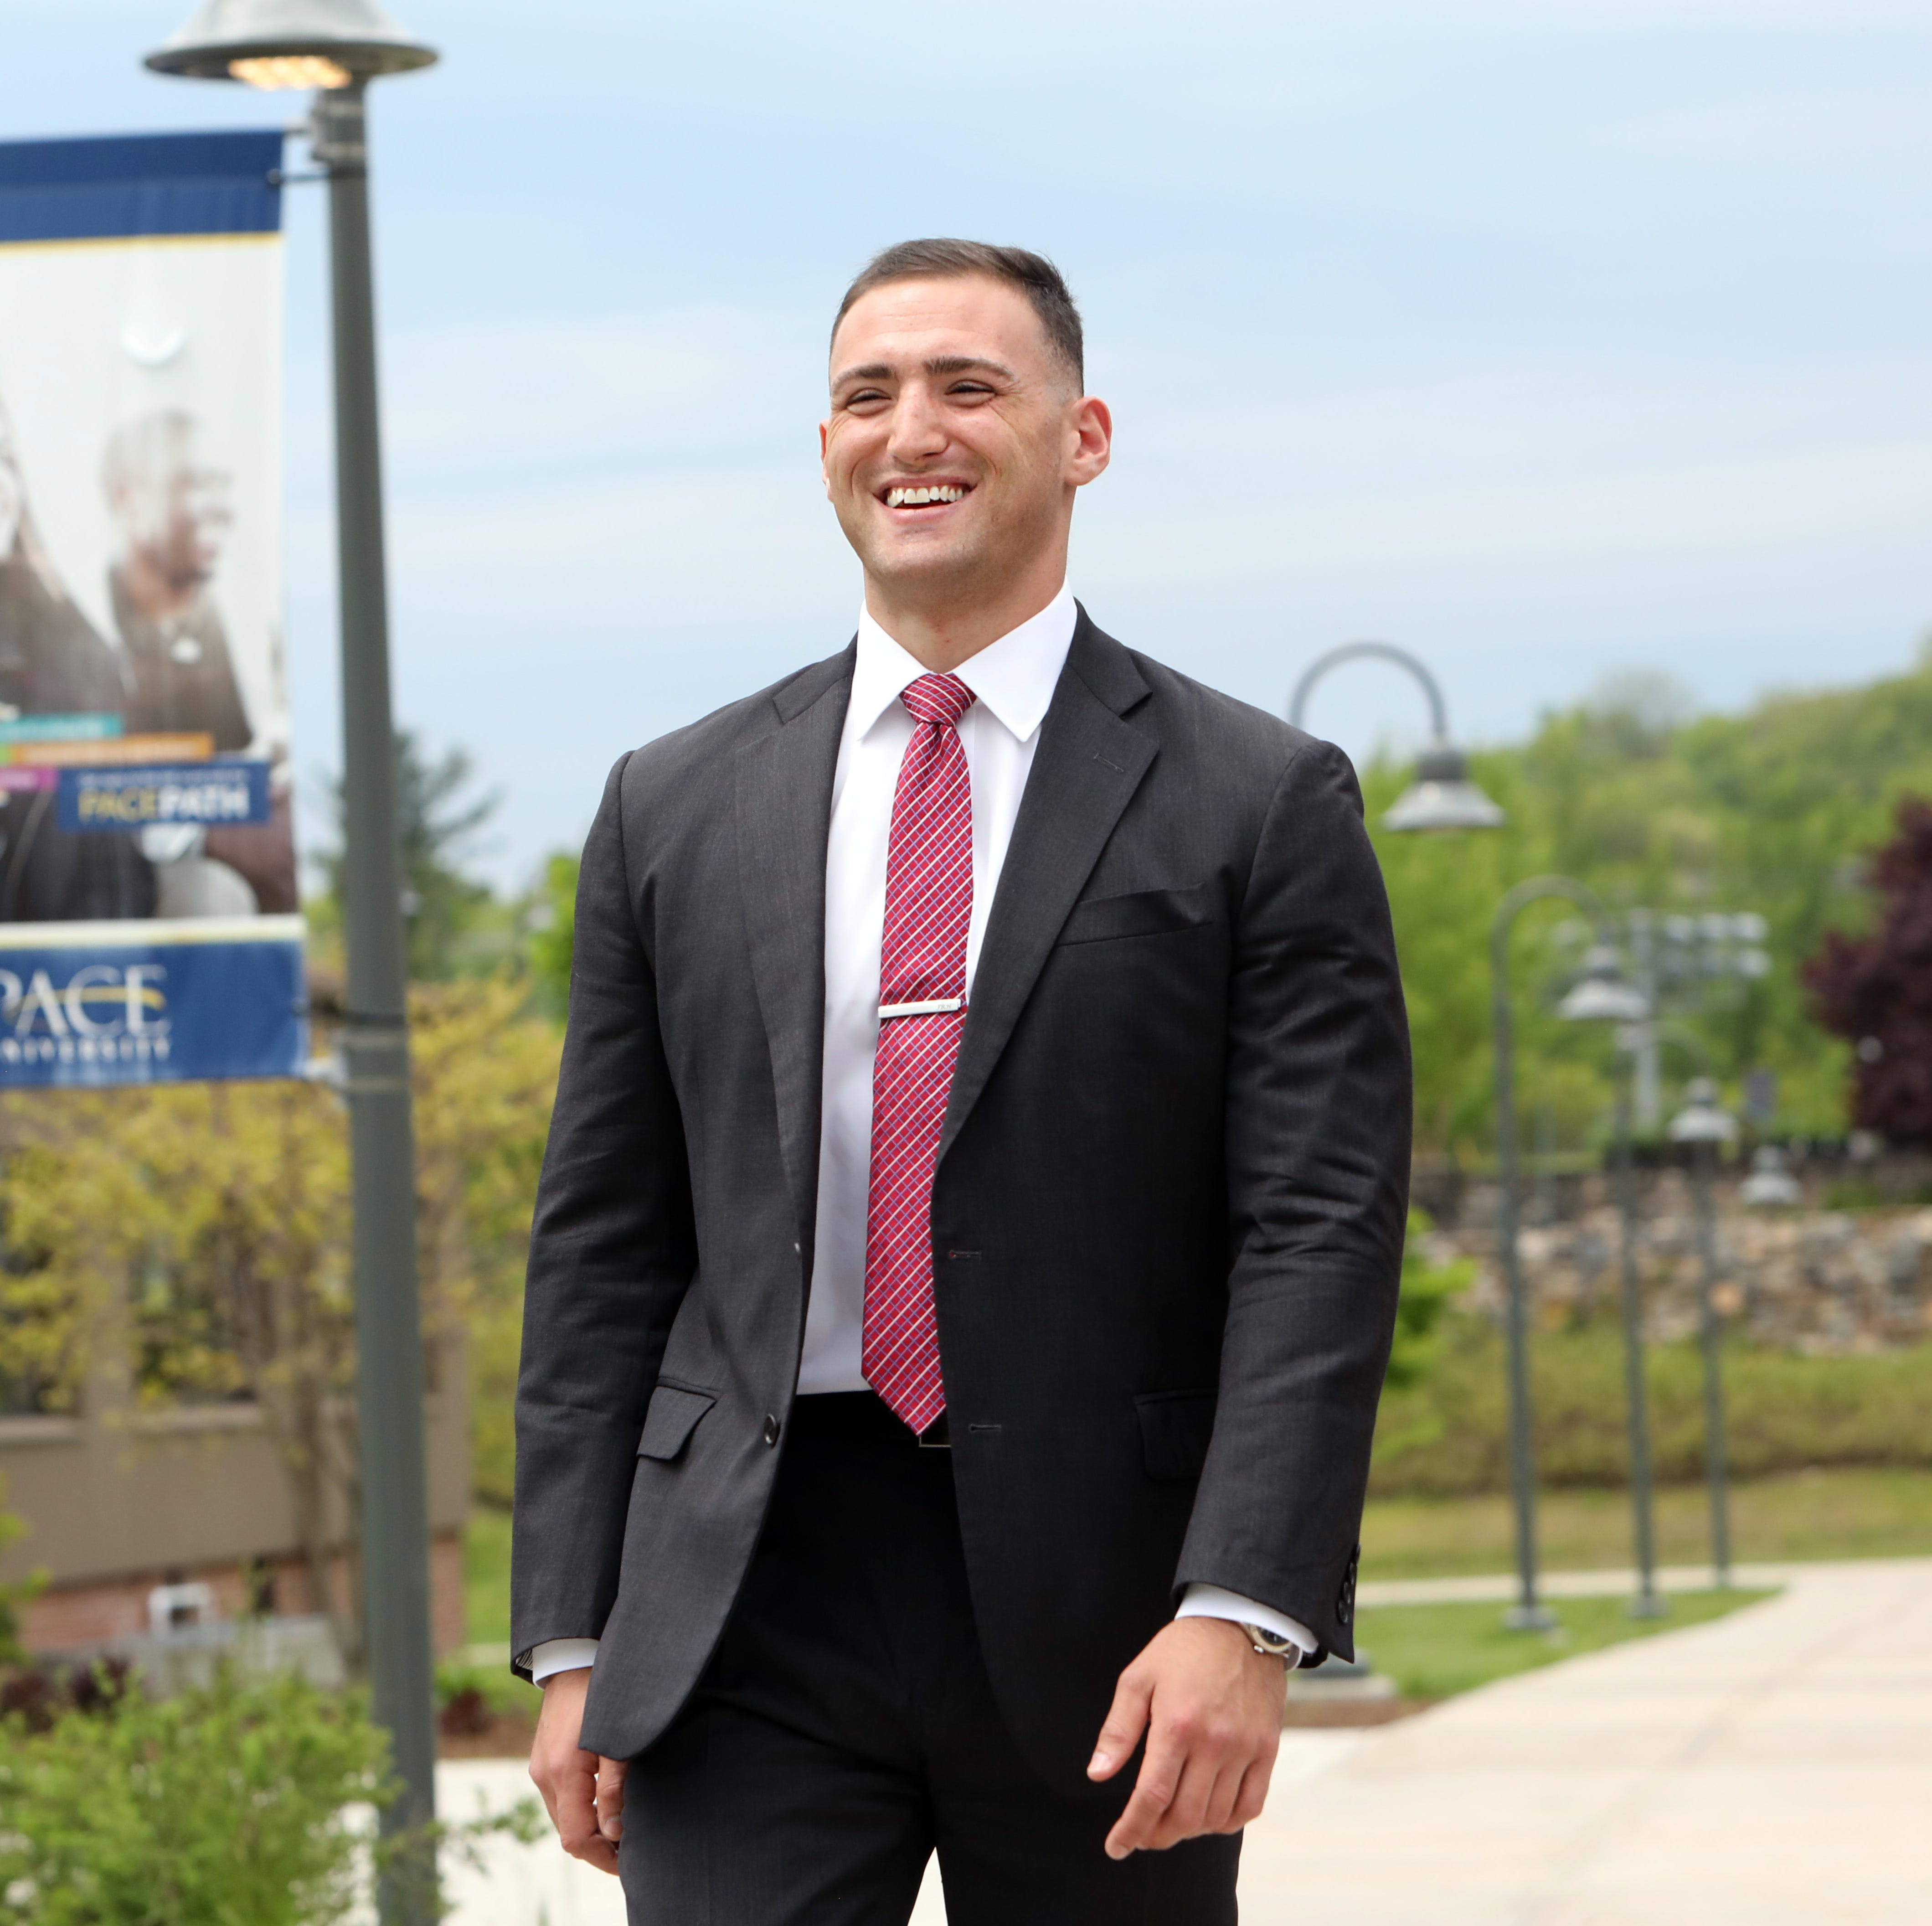 James Hickey, who is graduating from Pace University's Lubin School of Business, on campus before receiving an honors finance award May 17, 2019 in Pleasantville. Hickey lost his father at 11, his mother when he was a senior in high school, followed by their home. He entered the workforce and has lived with friends over the years who he credits for helping him move forward. He now lives in a White Plains and will be graduating from Pace with a 4.0 GPA and a job waiting for him at Merrill Lynch.